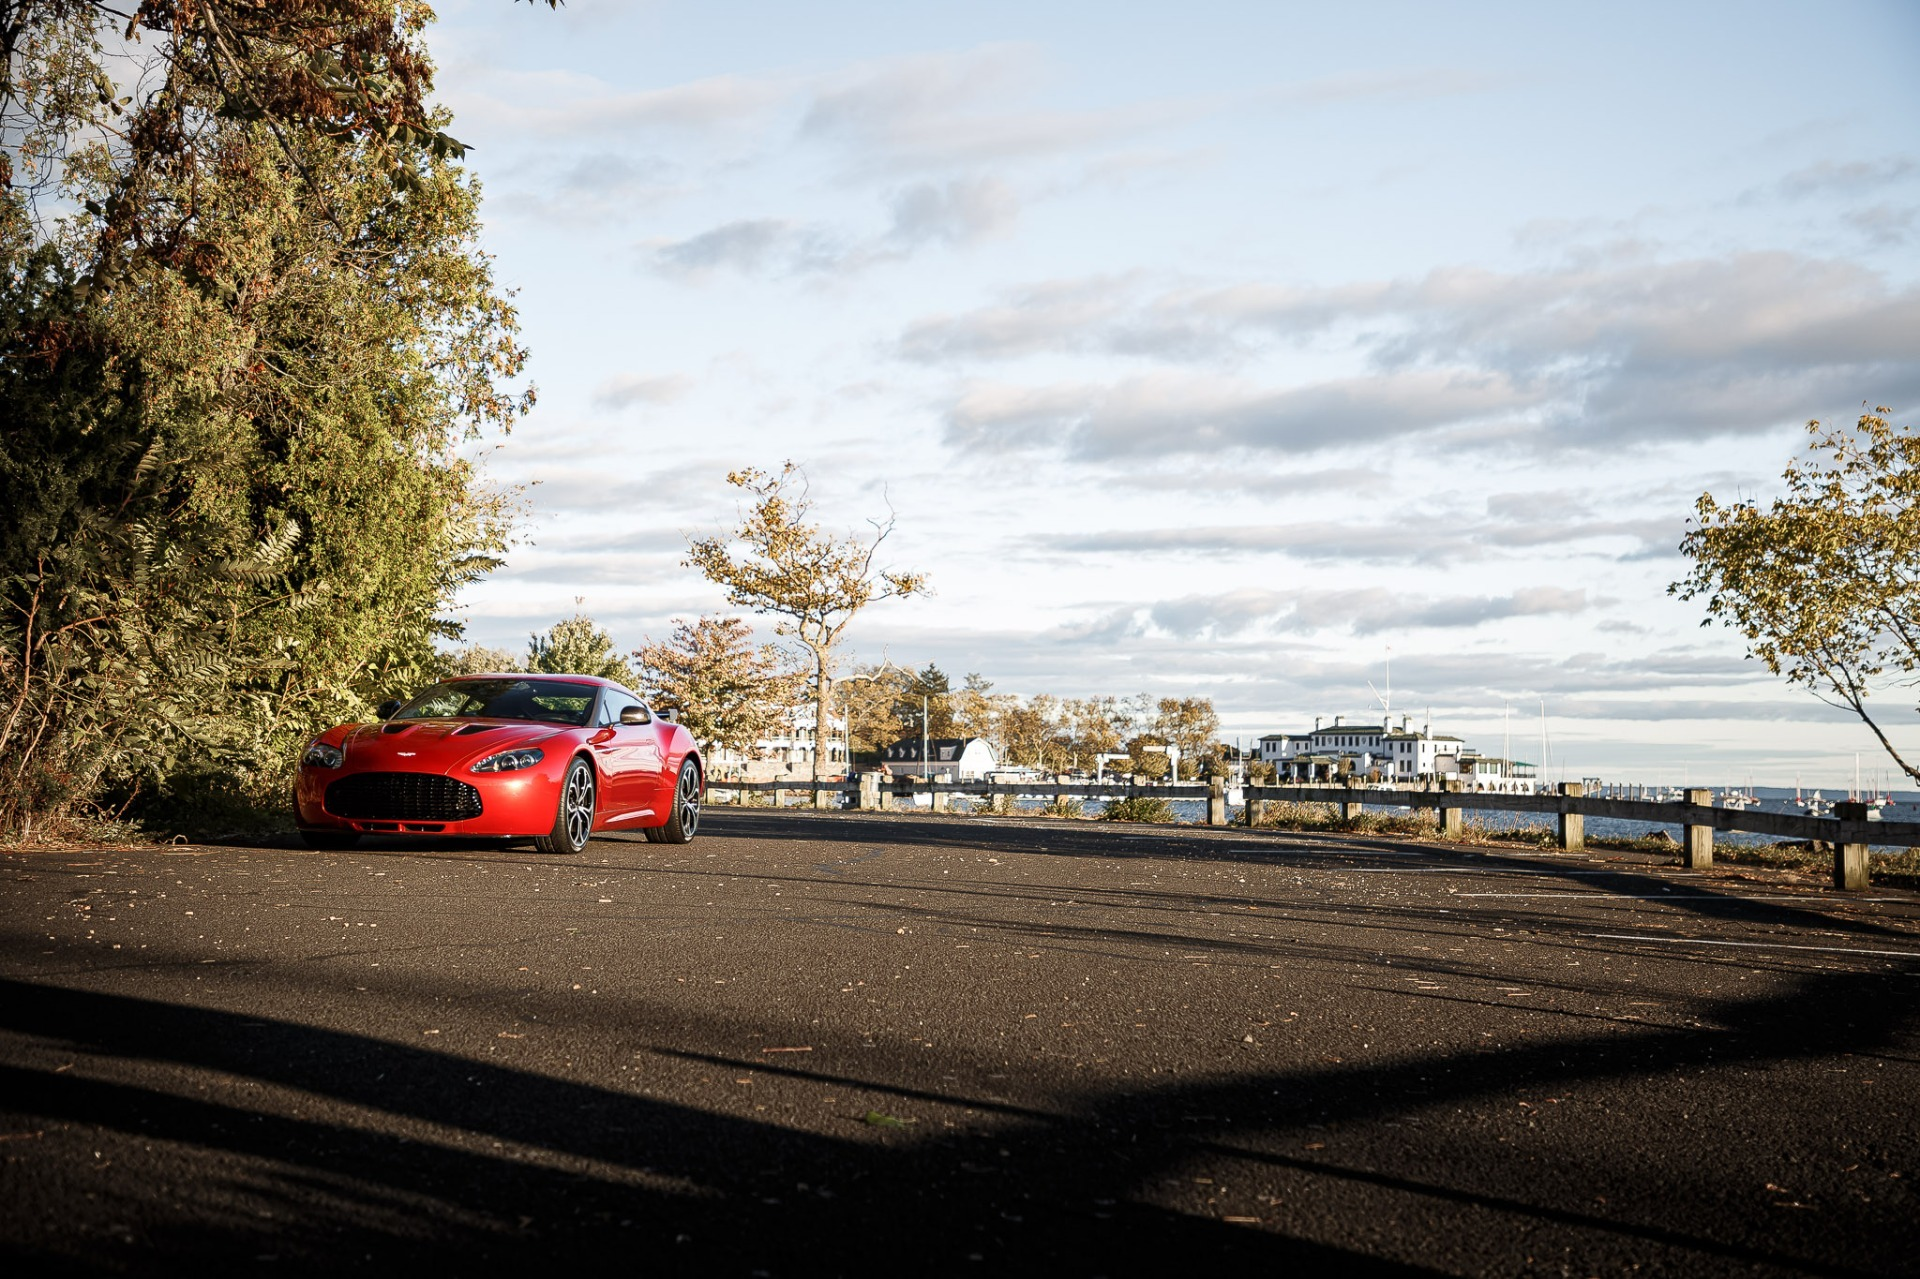 Used 2013 Aston Martin V12 Zagato Coupe For Sale In Westport, CT 3181_p31